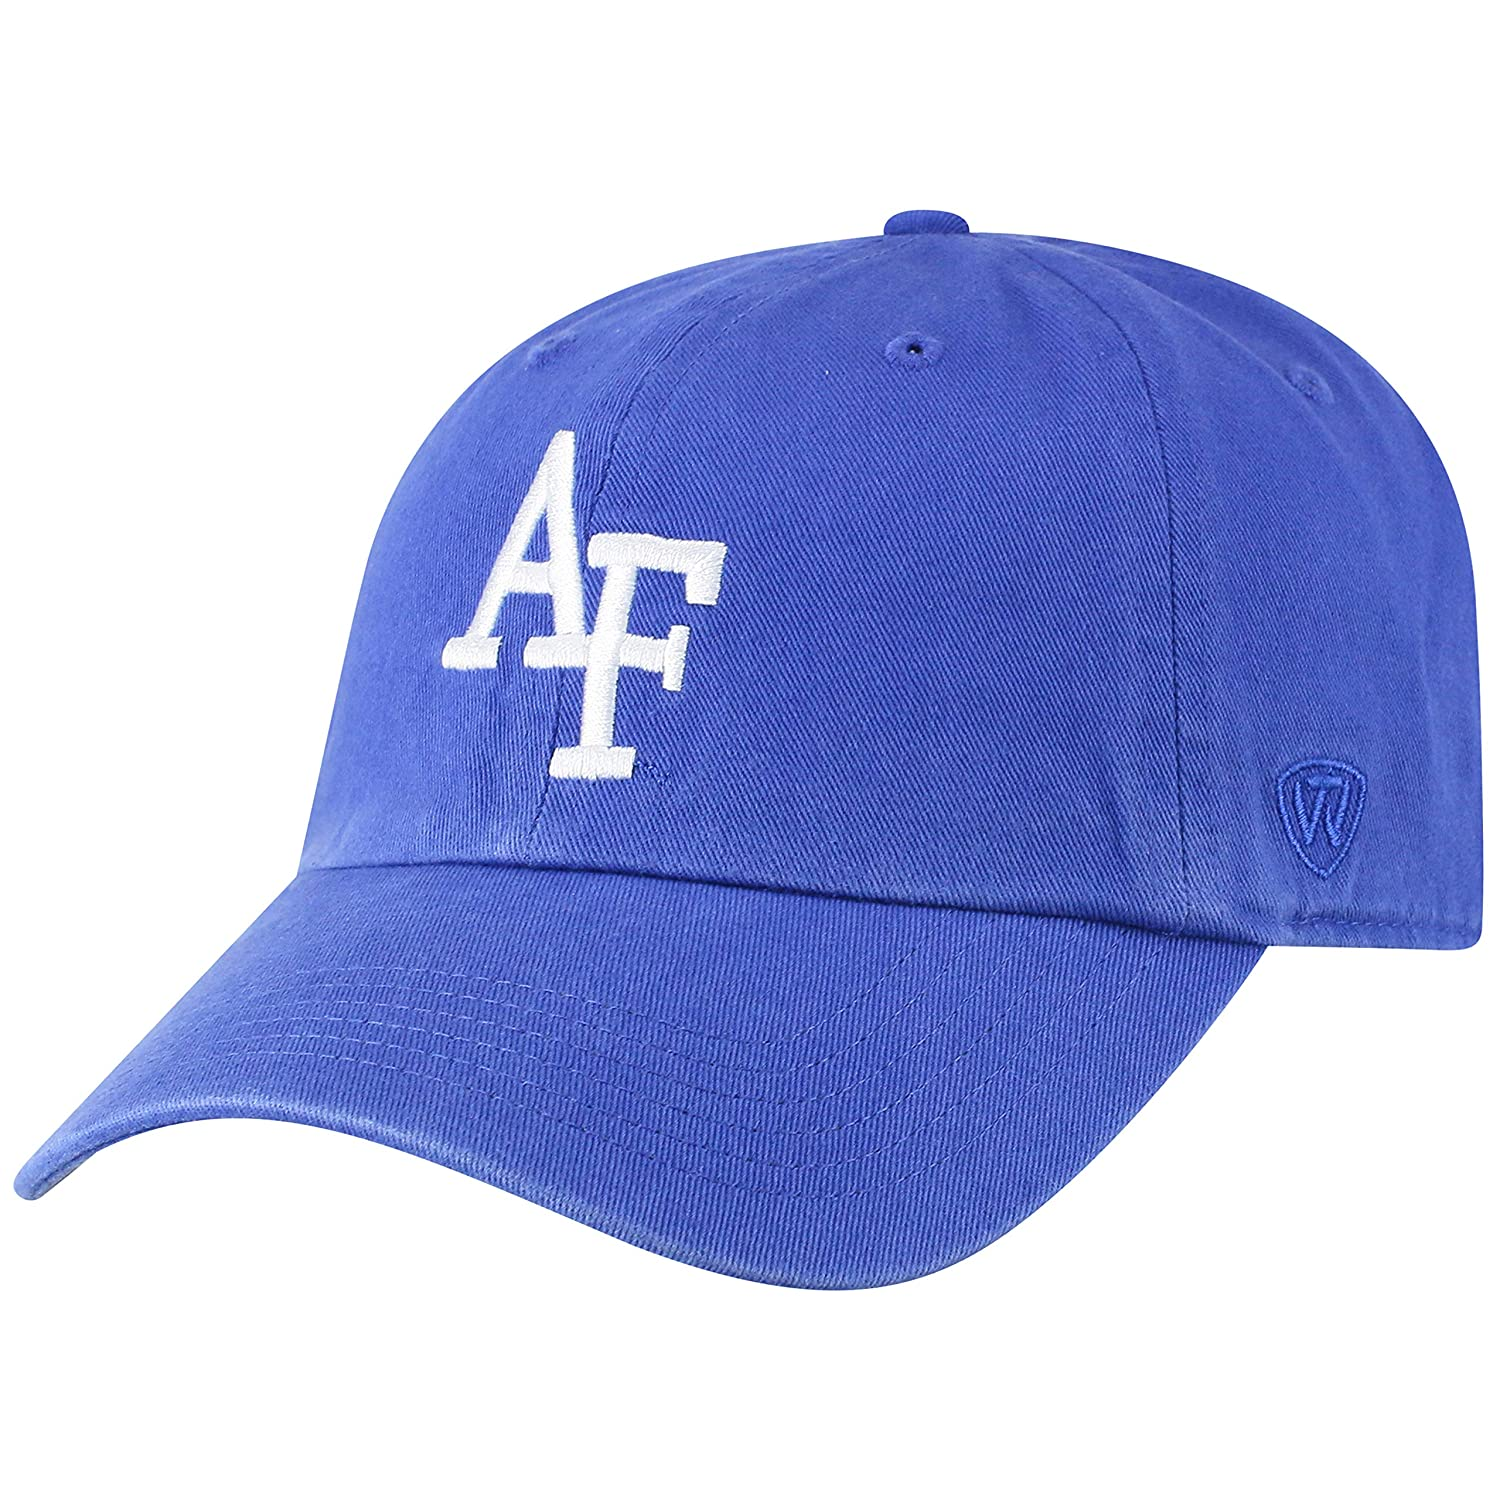 huge discount bbe21 3ff78 Amazon.com   Top of the World Air Force Falcons Men s Hat Icon, Royal,  Adjustable   Clothing